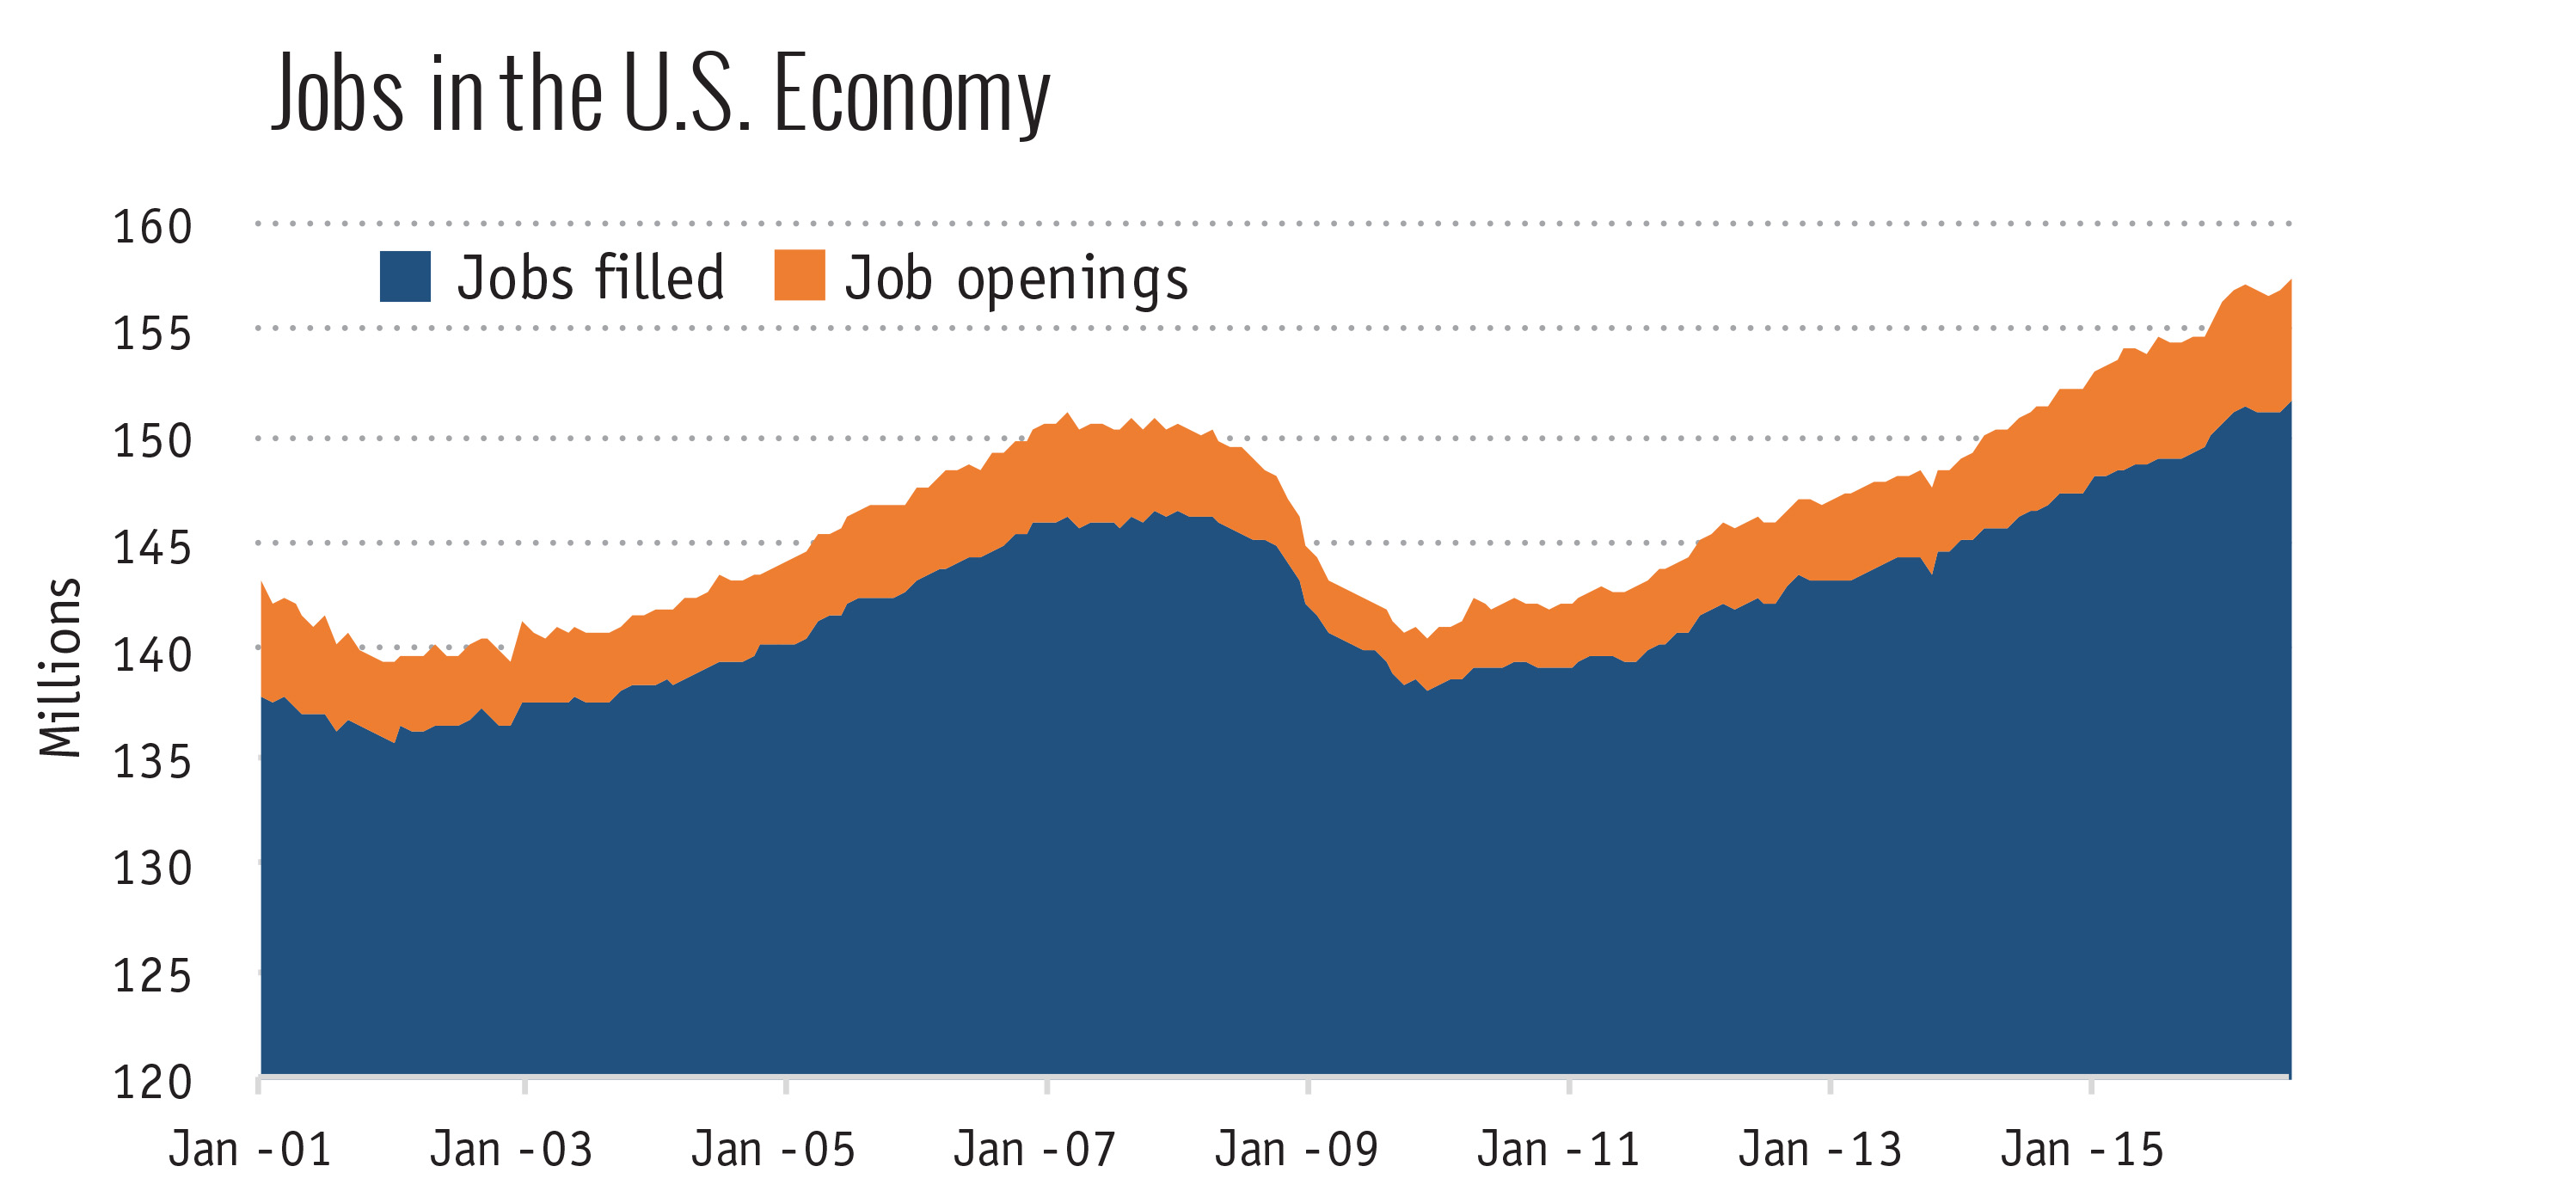 Jobs in the Economy